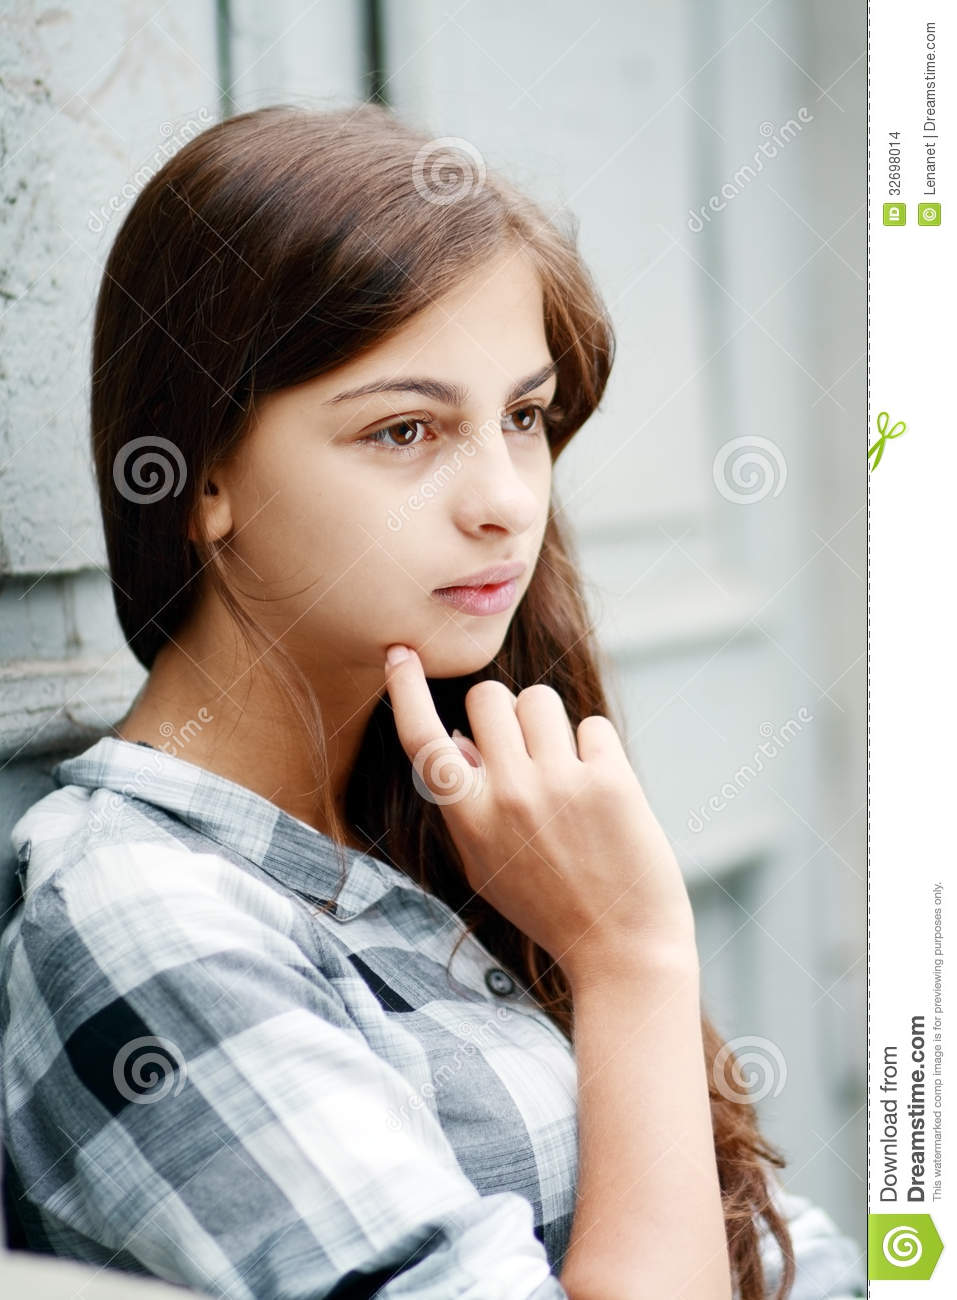 Beautiful sad girl stock photo image of expression Photo of a beautiful girl